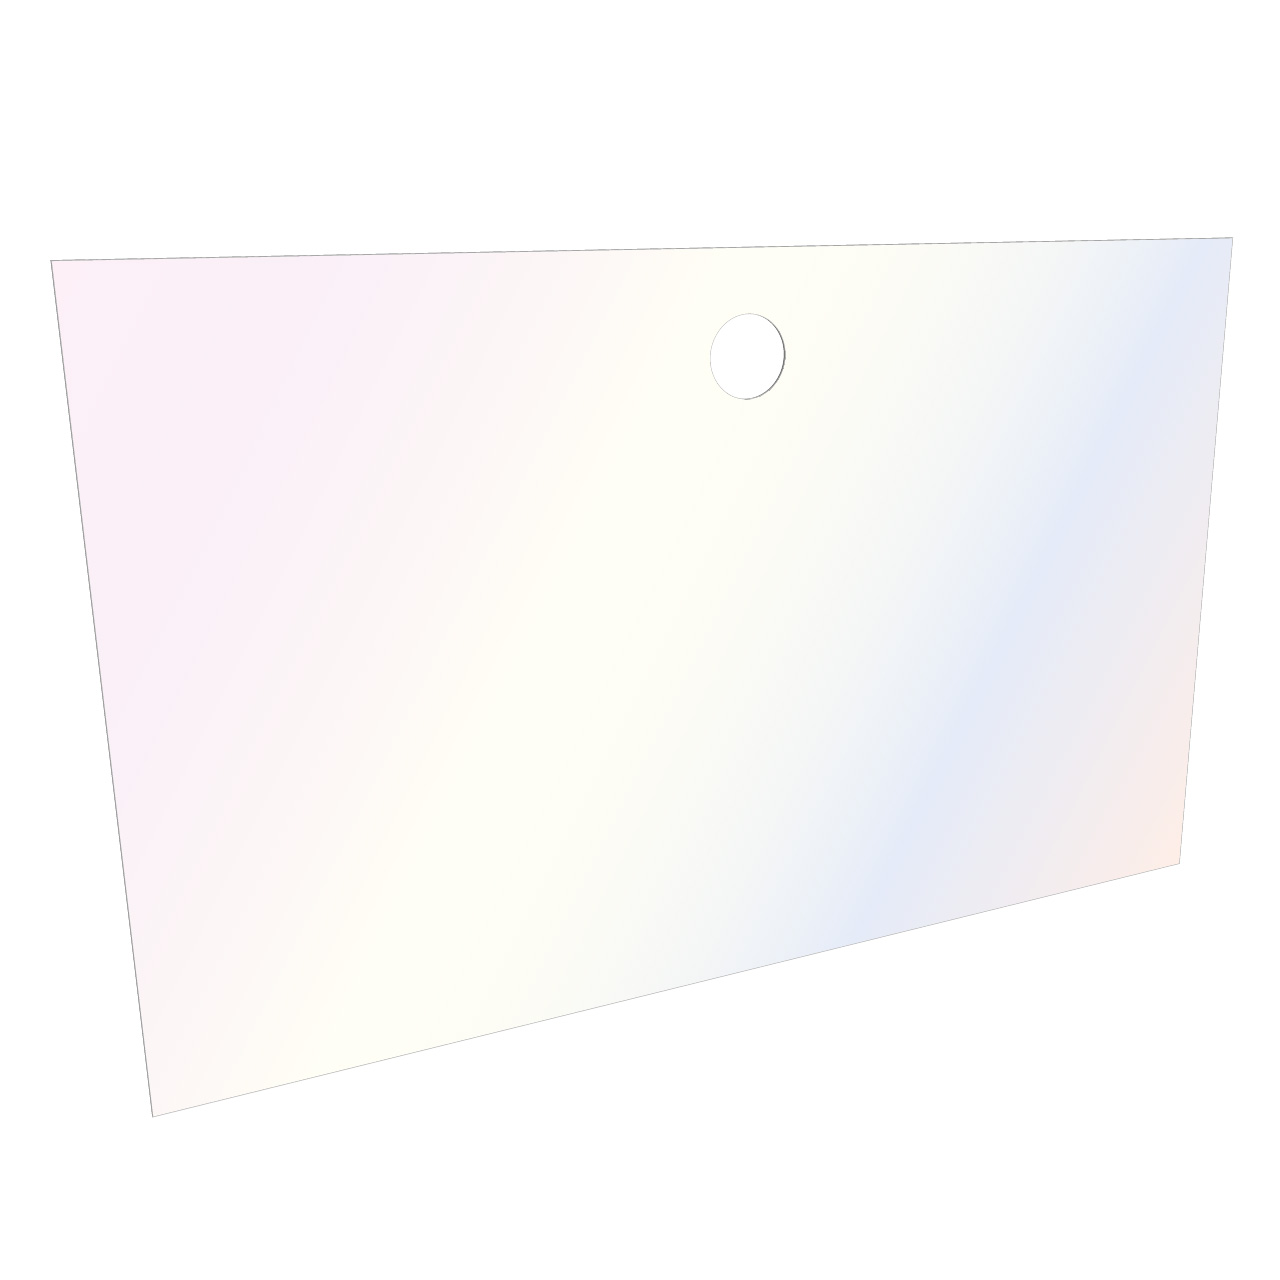 Greencast® Recycled Acrylic Surface Protector